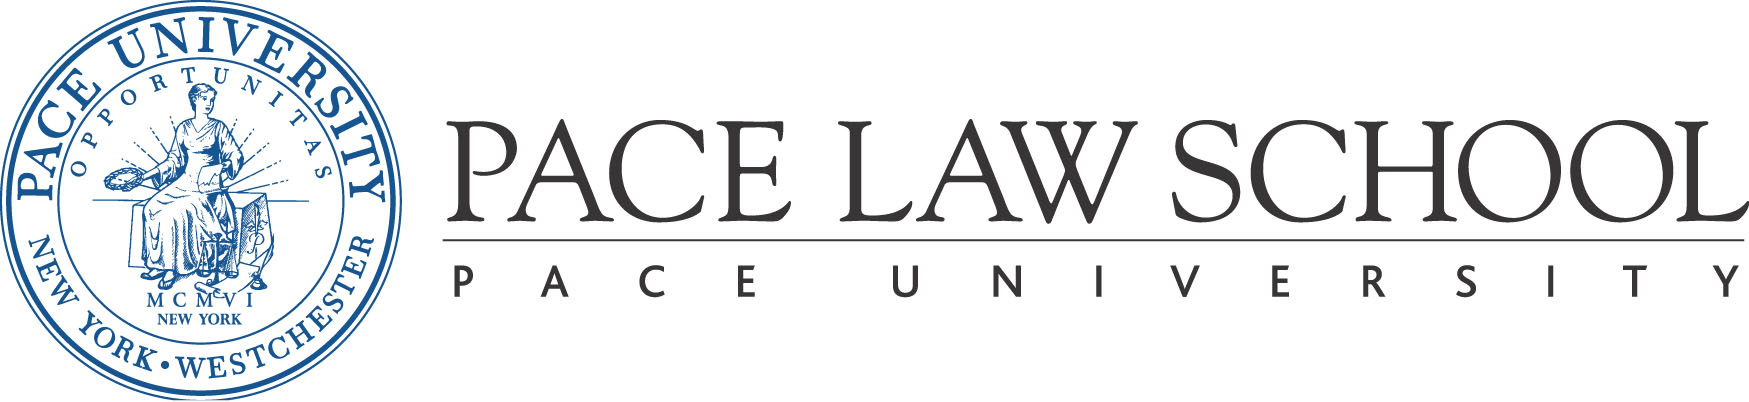 2nd Annual Pace Law School Sports & Entertainment Law Forum